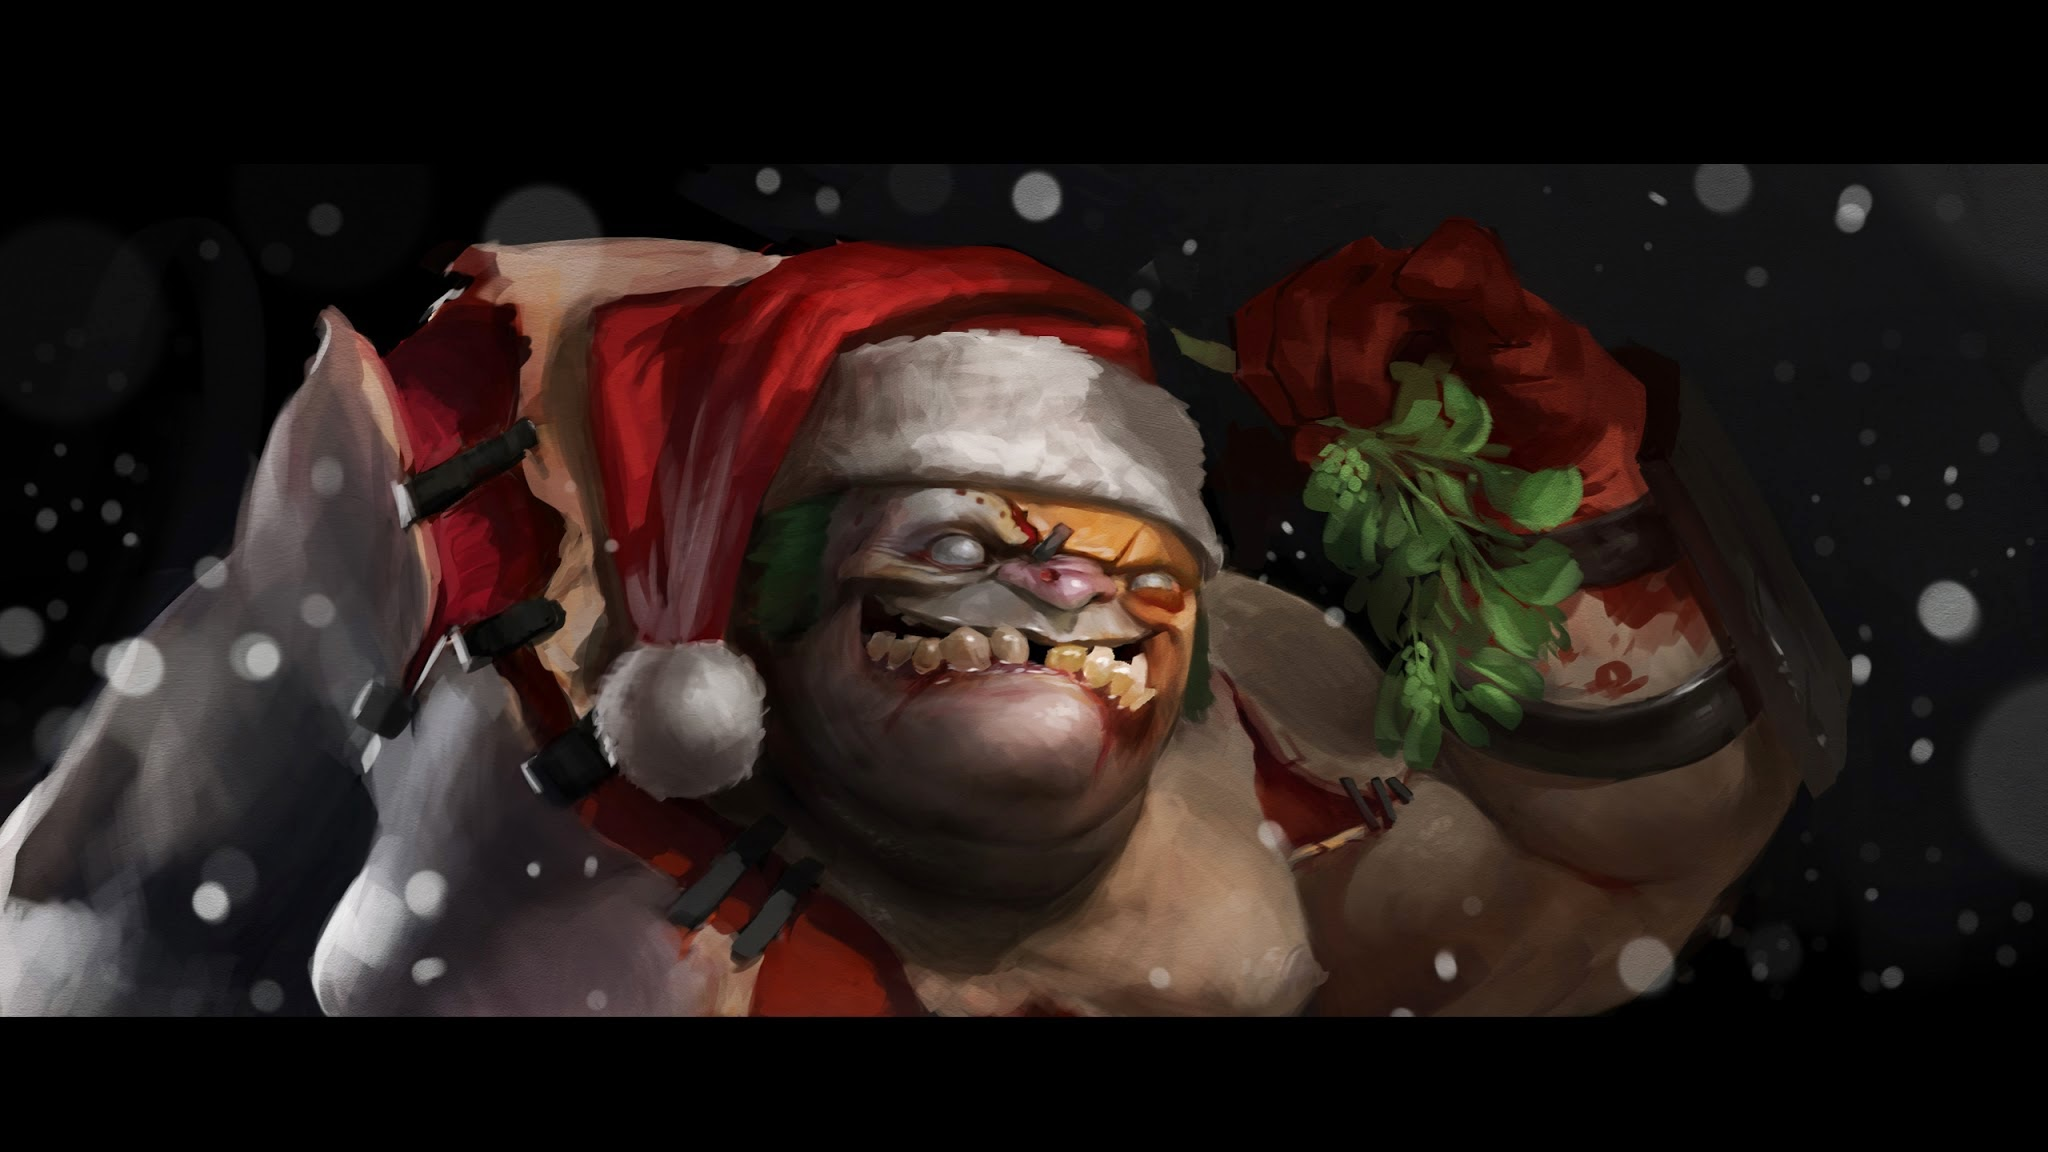 dota 2 christmas pudge wallpaper404.com hd